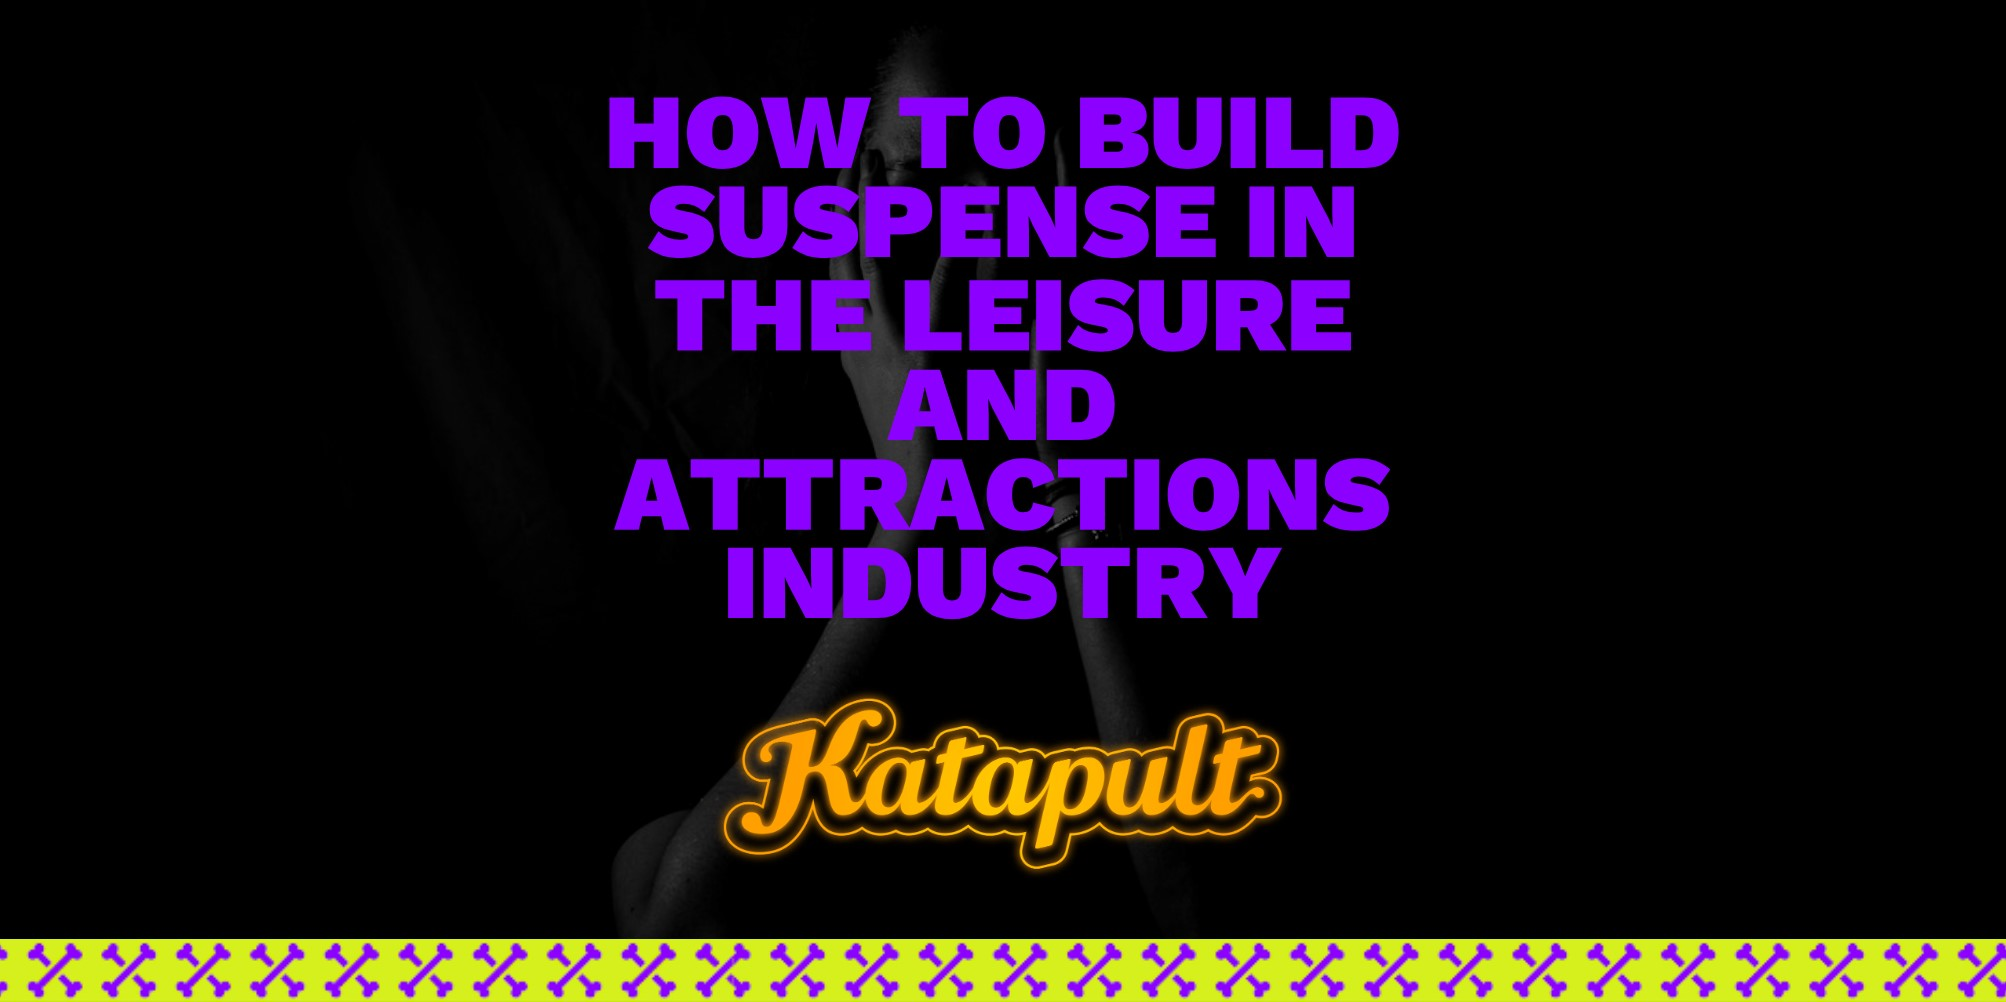 How to build suspense in the leisure and attractions industry